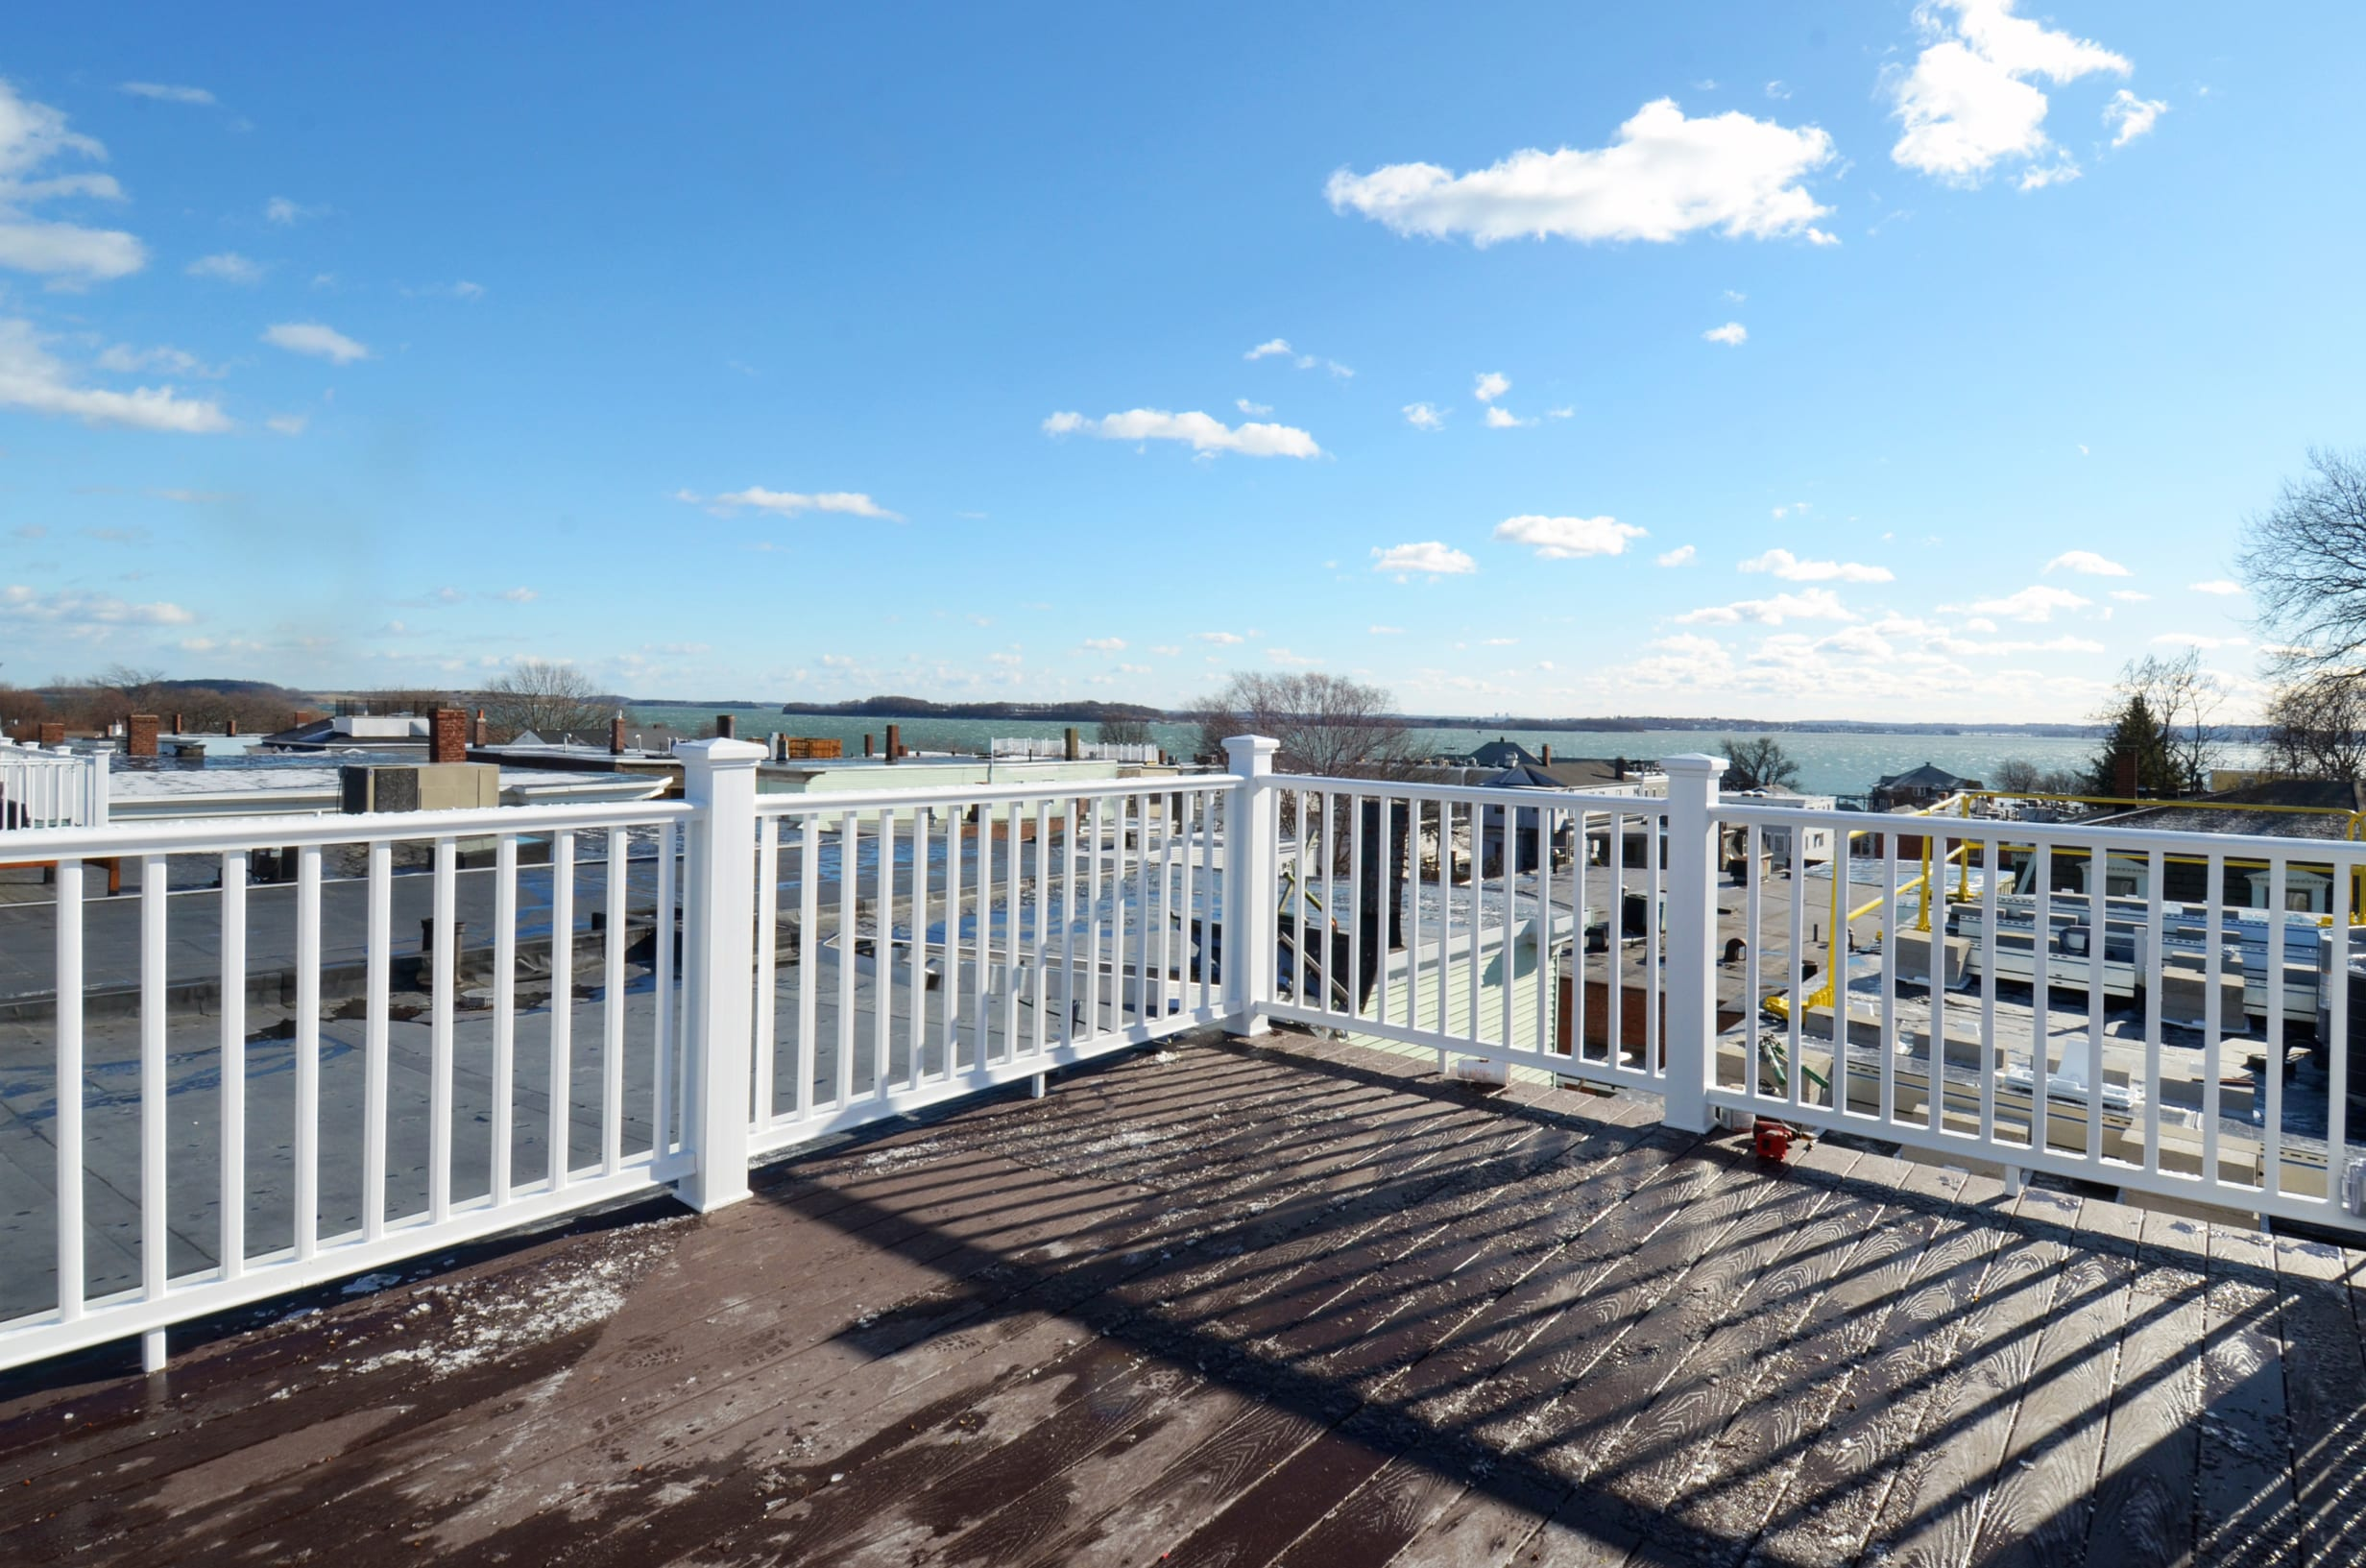 Photo of Finished Exterior Roof Deck of 808 E 5th Street by Kaplan Properties Boston